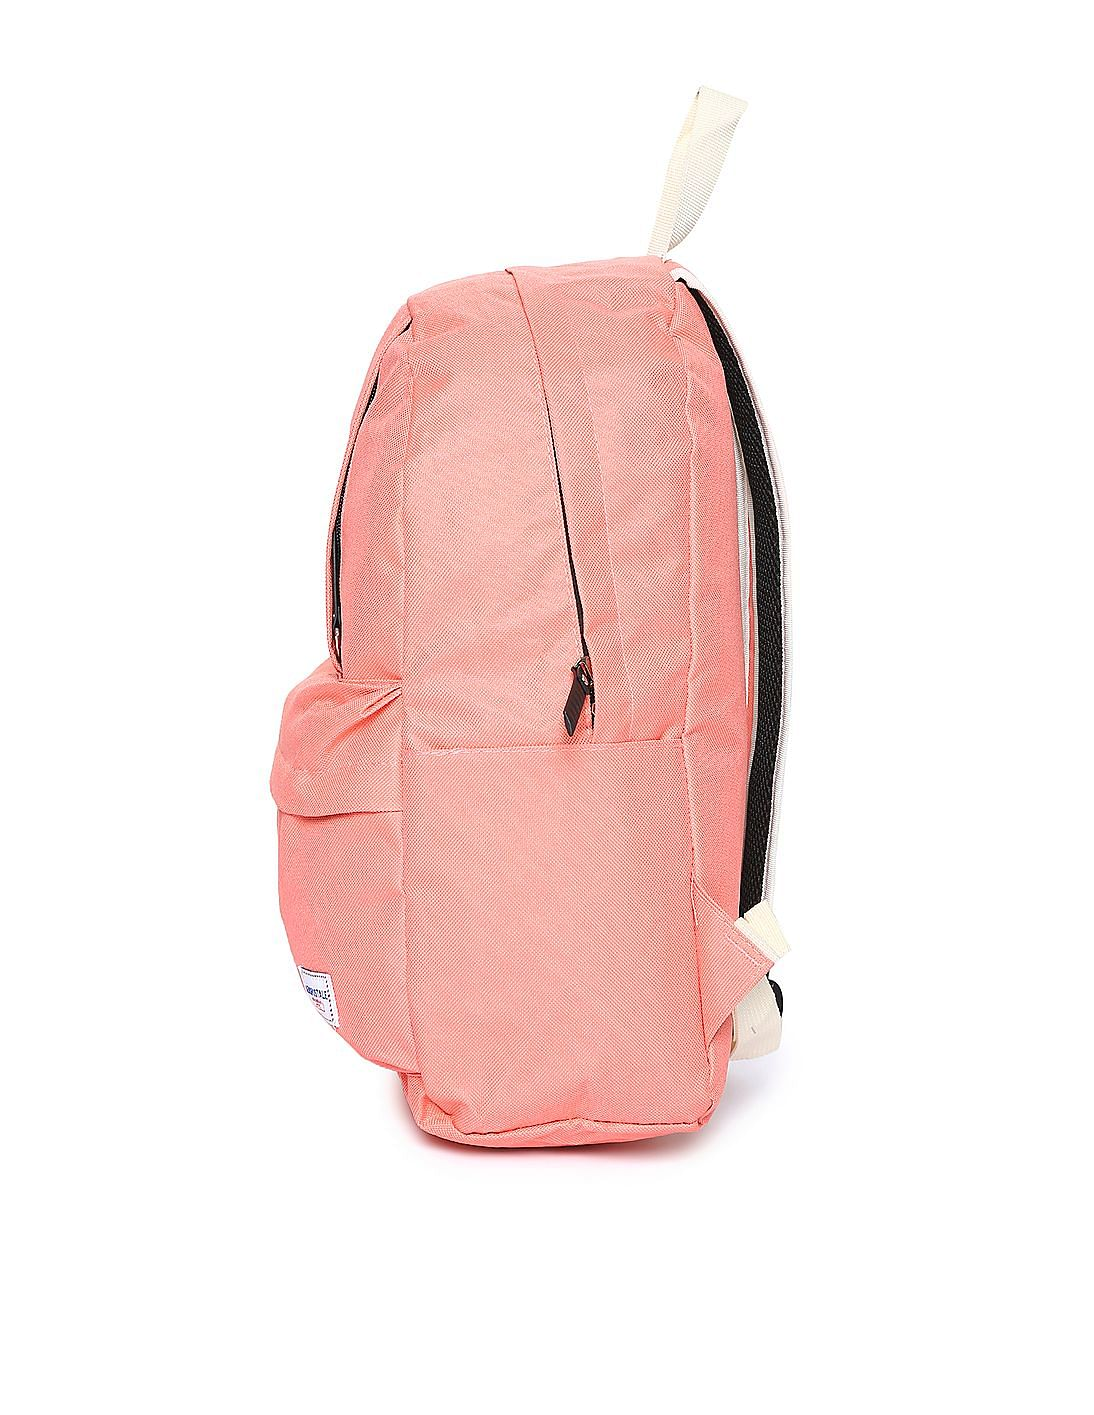 385c6a8598 Buy Women Solid Canvas Backpack online at NNNOW.com